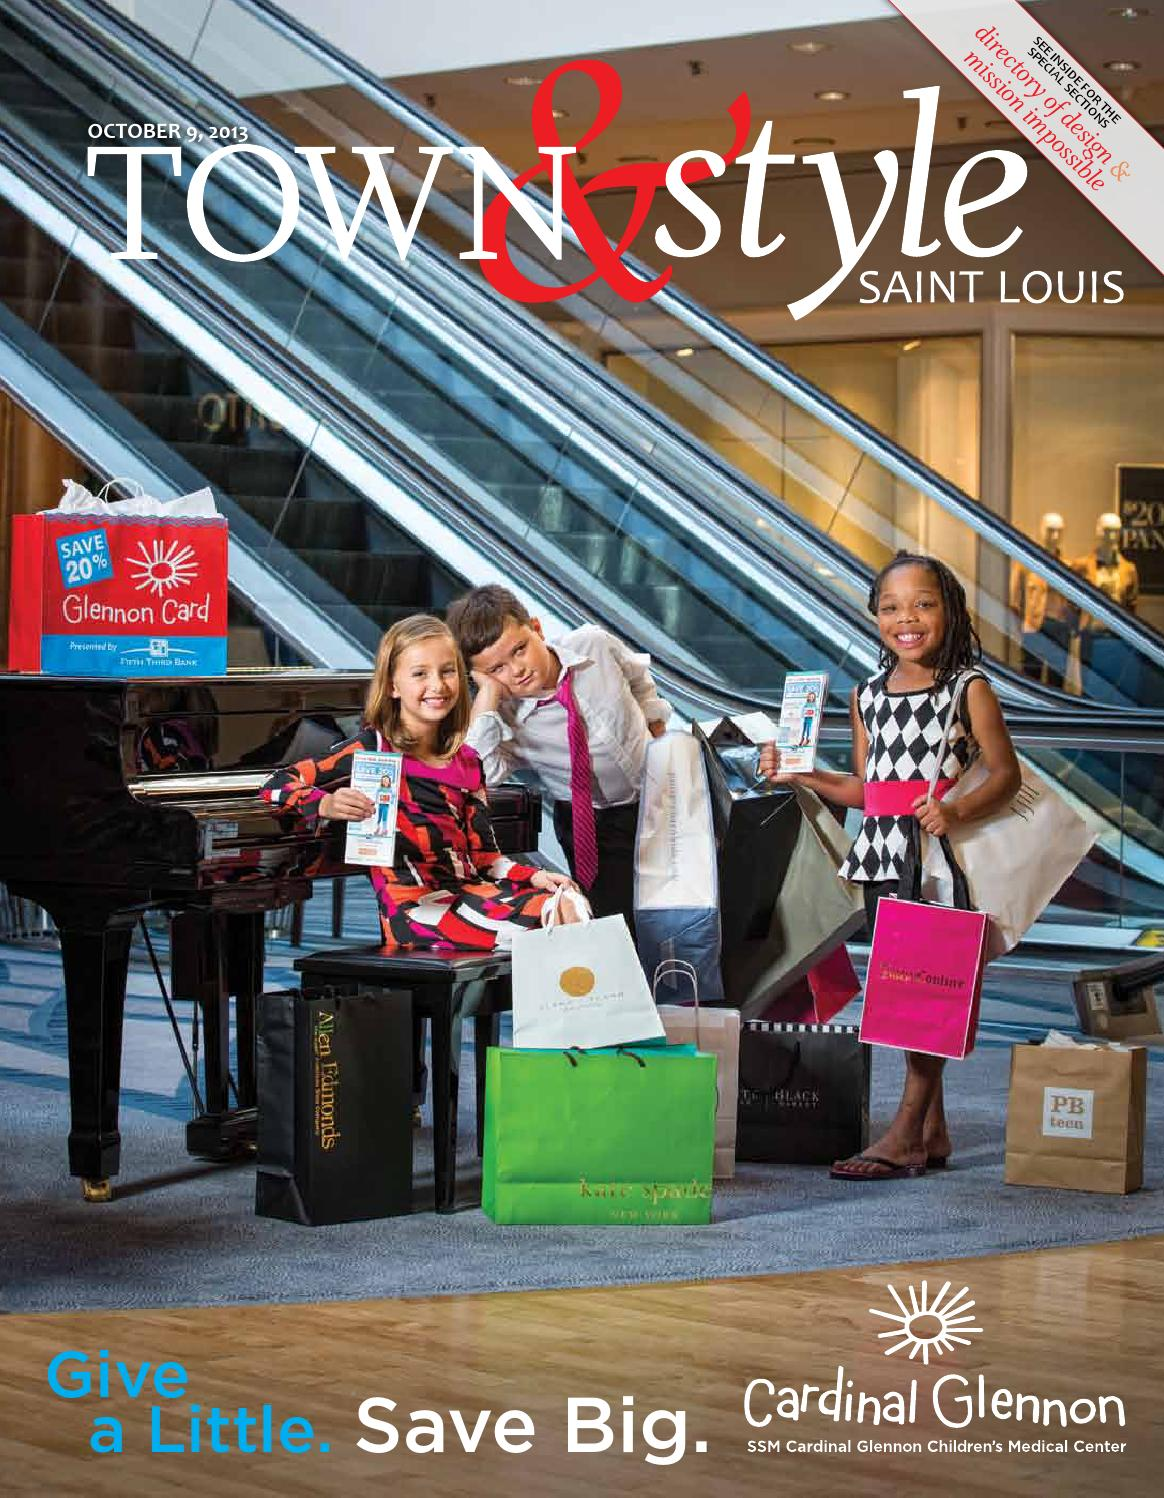 sc 1 st  Issuu & Townu0026Style St.Louis 10.09.13 by St. Louis Town u0026 Style - issuu azcodes.com